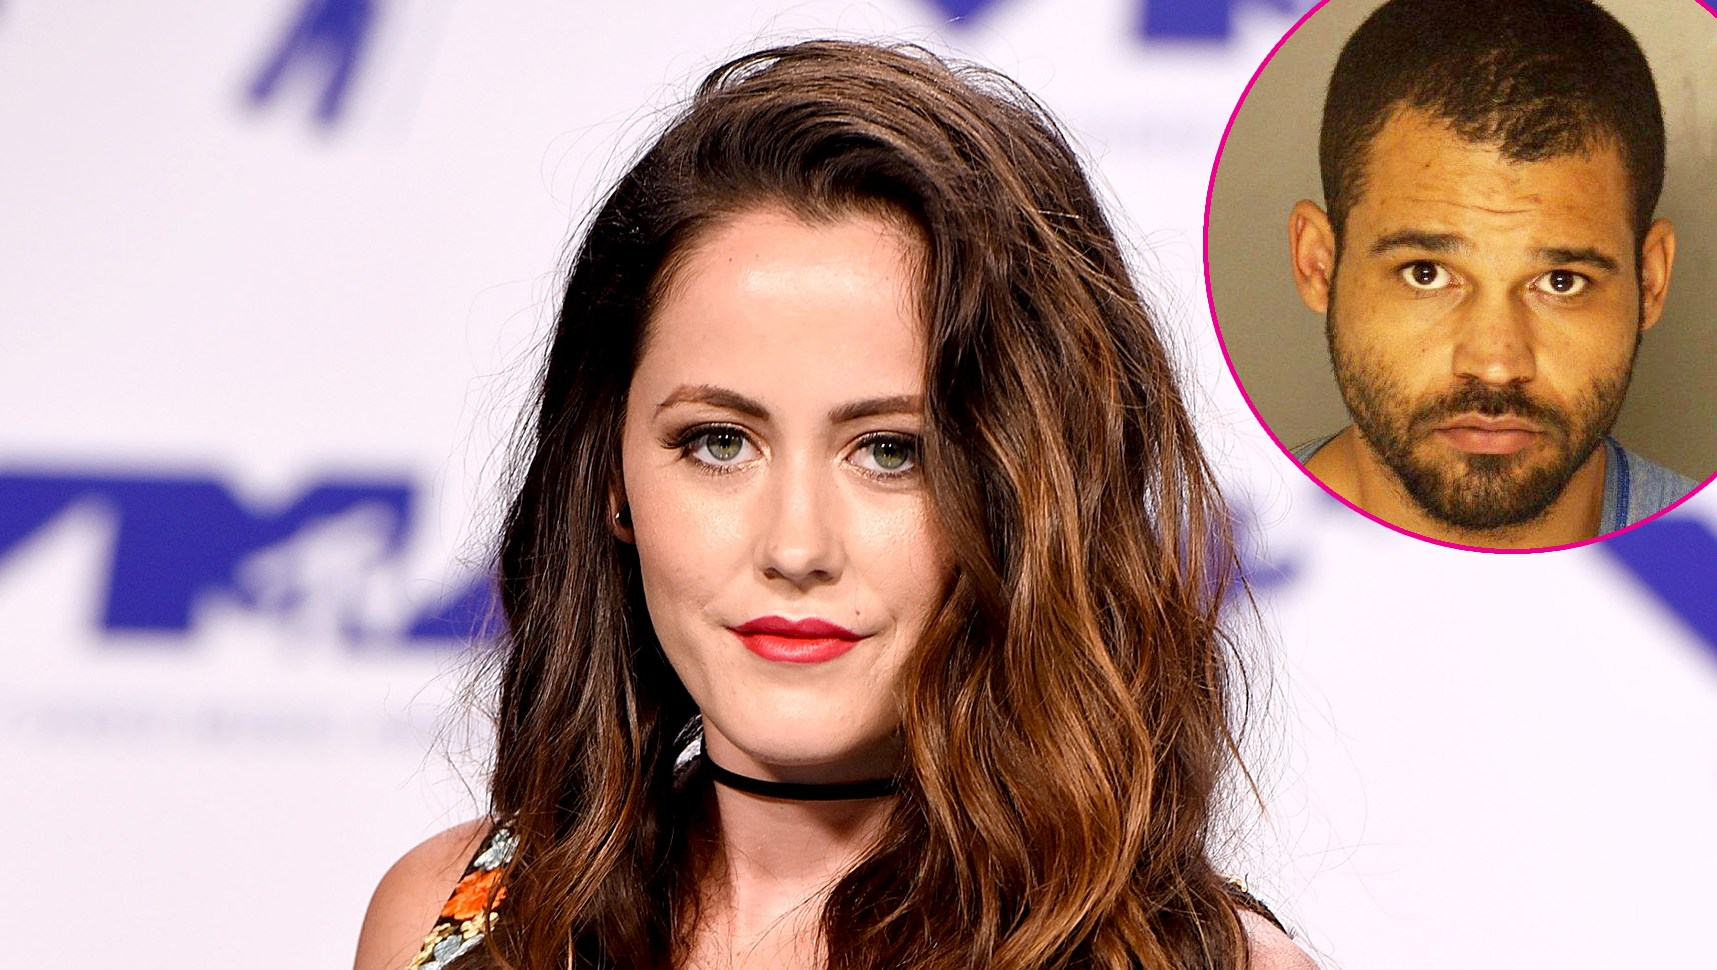 Jenelle-Evans'-Ex-Kieffer-Delp-Accepts-Plea-Deal-After-Meth-Arrest